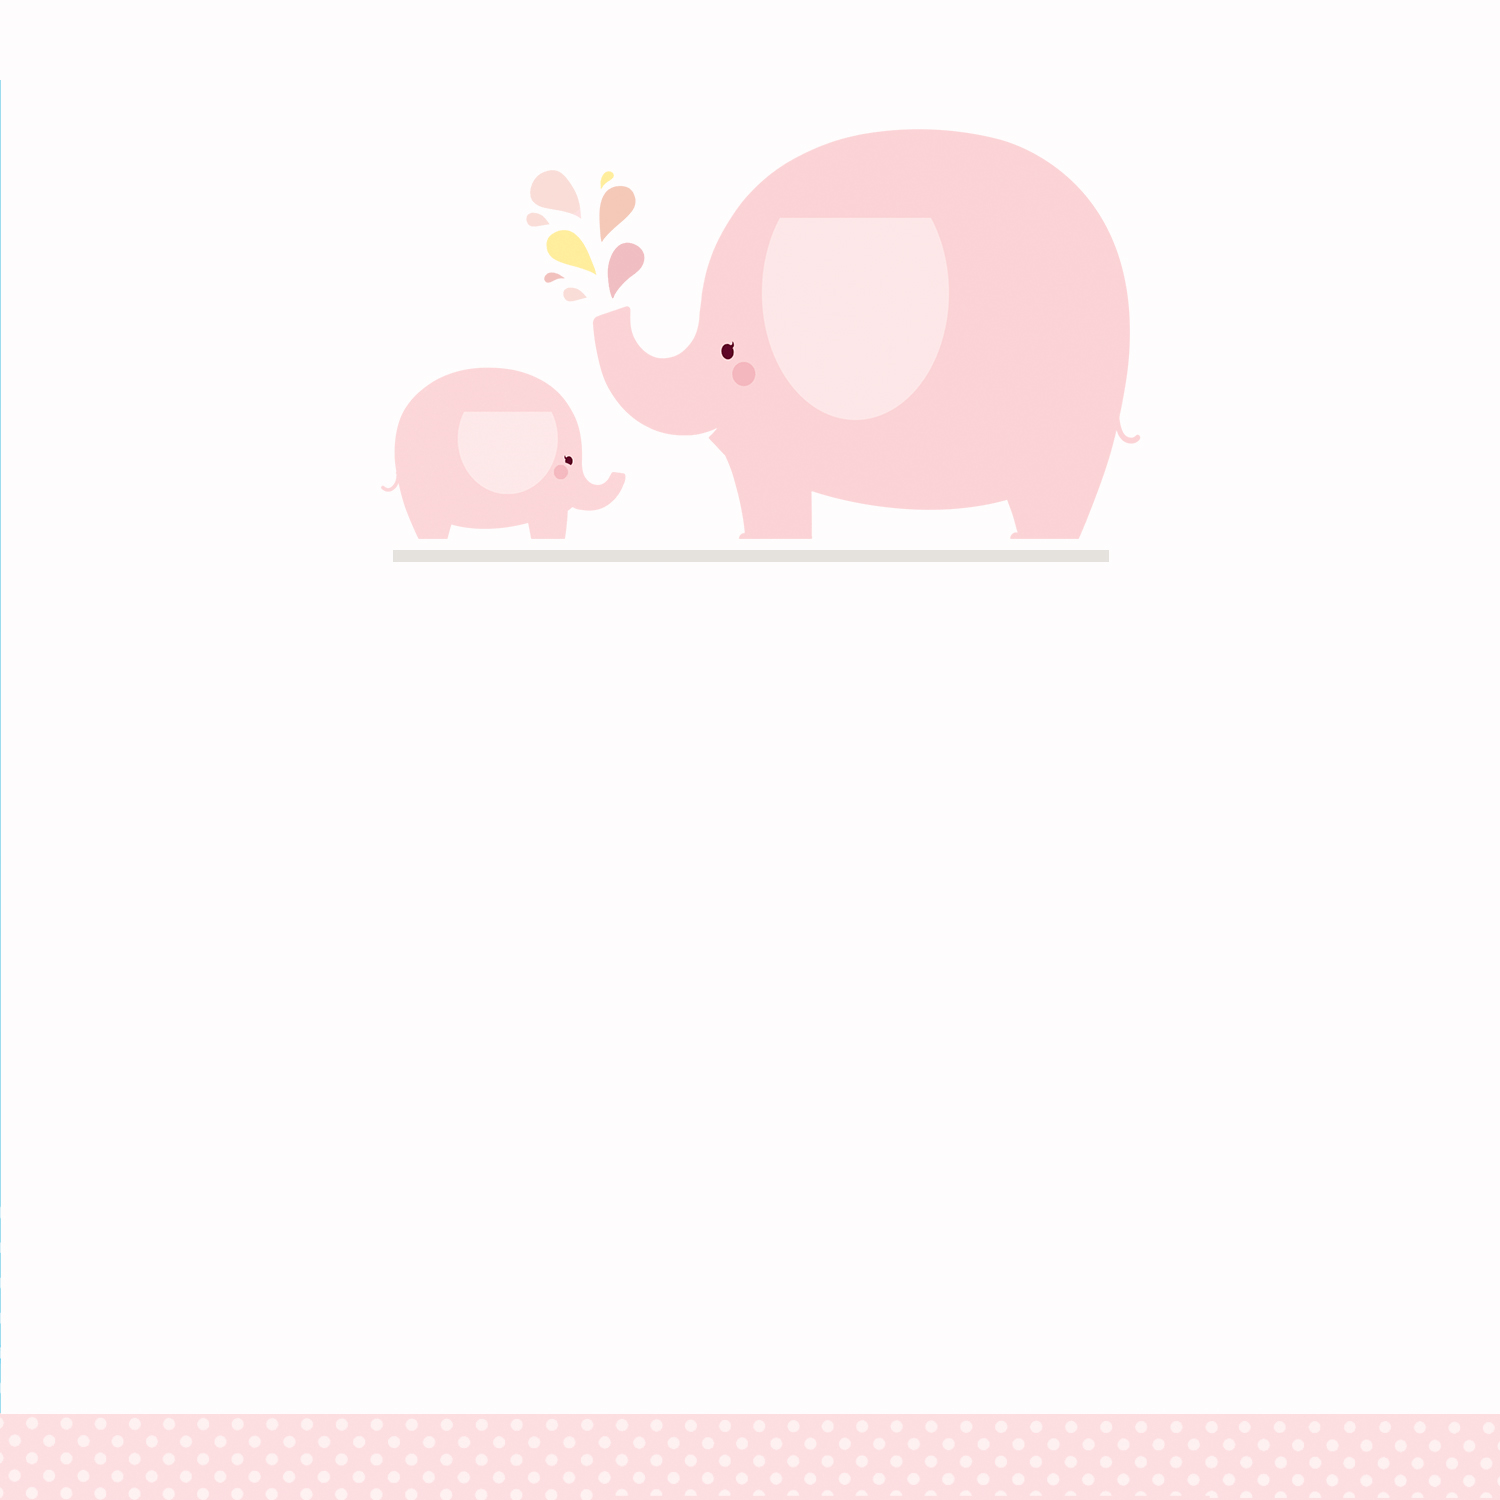 Pink and gray elephant baby shower clipart clip art freeuse stock Pink Baby Elephant - Free Printable Baby Shower Invitation ... clip art freeuse stock